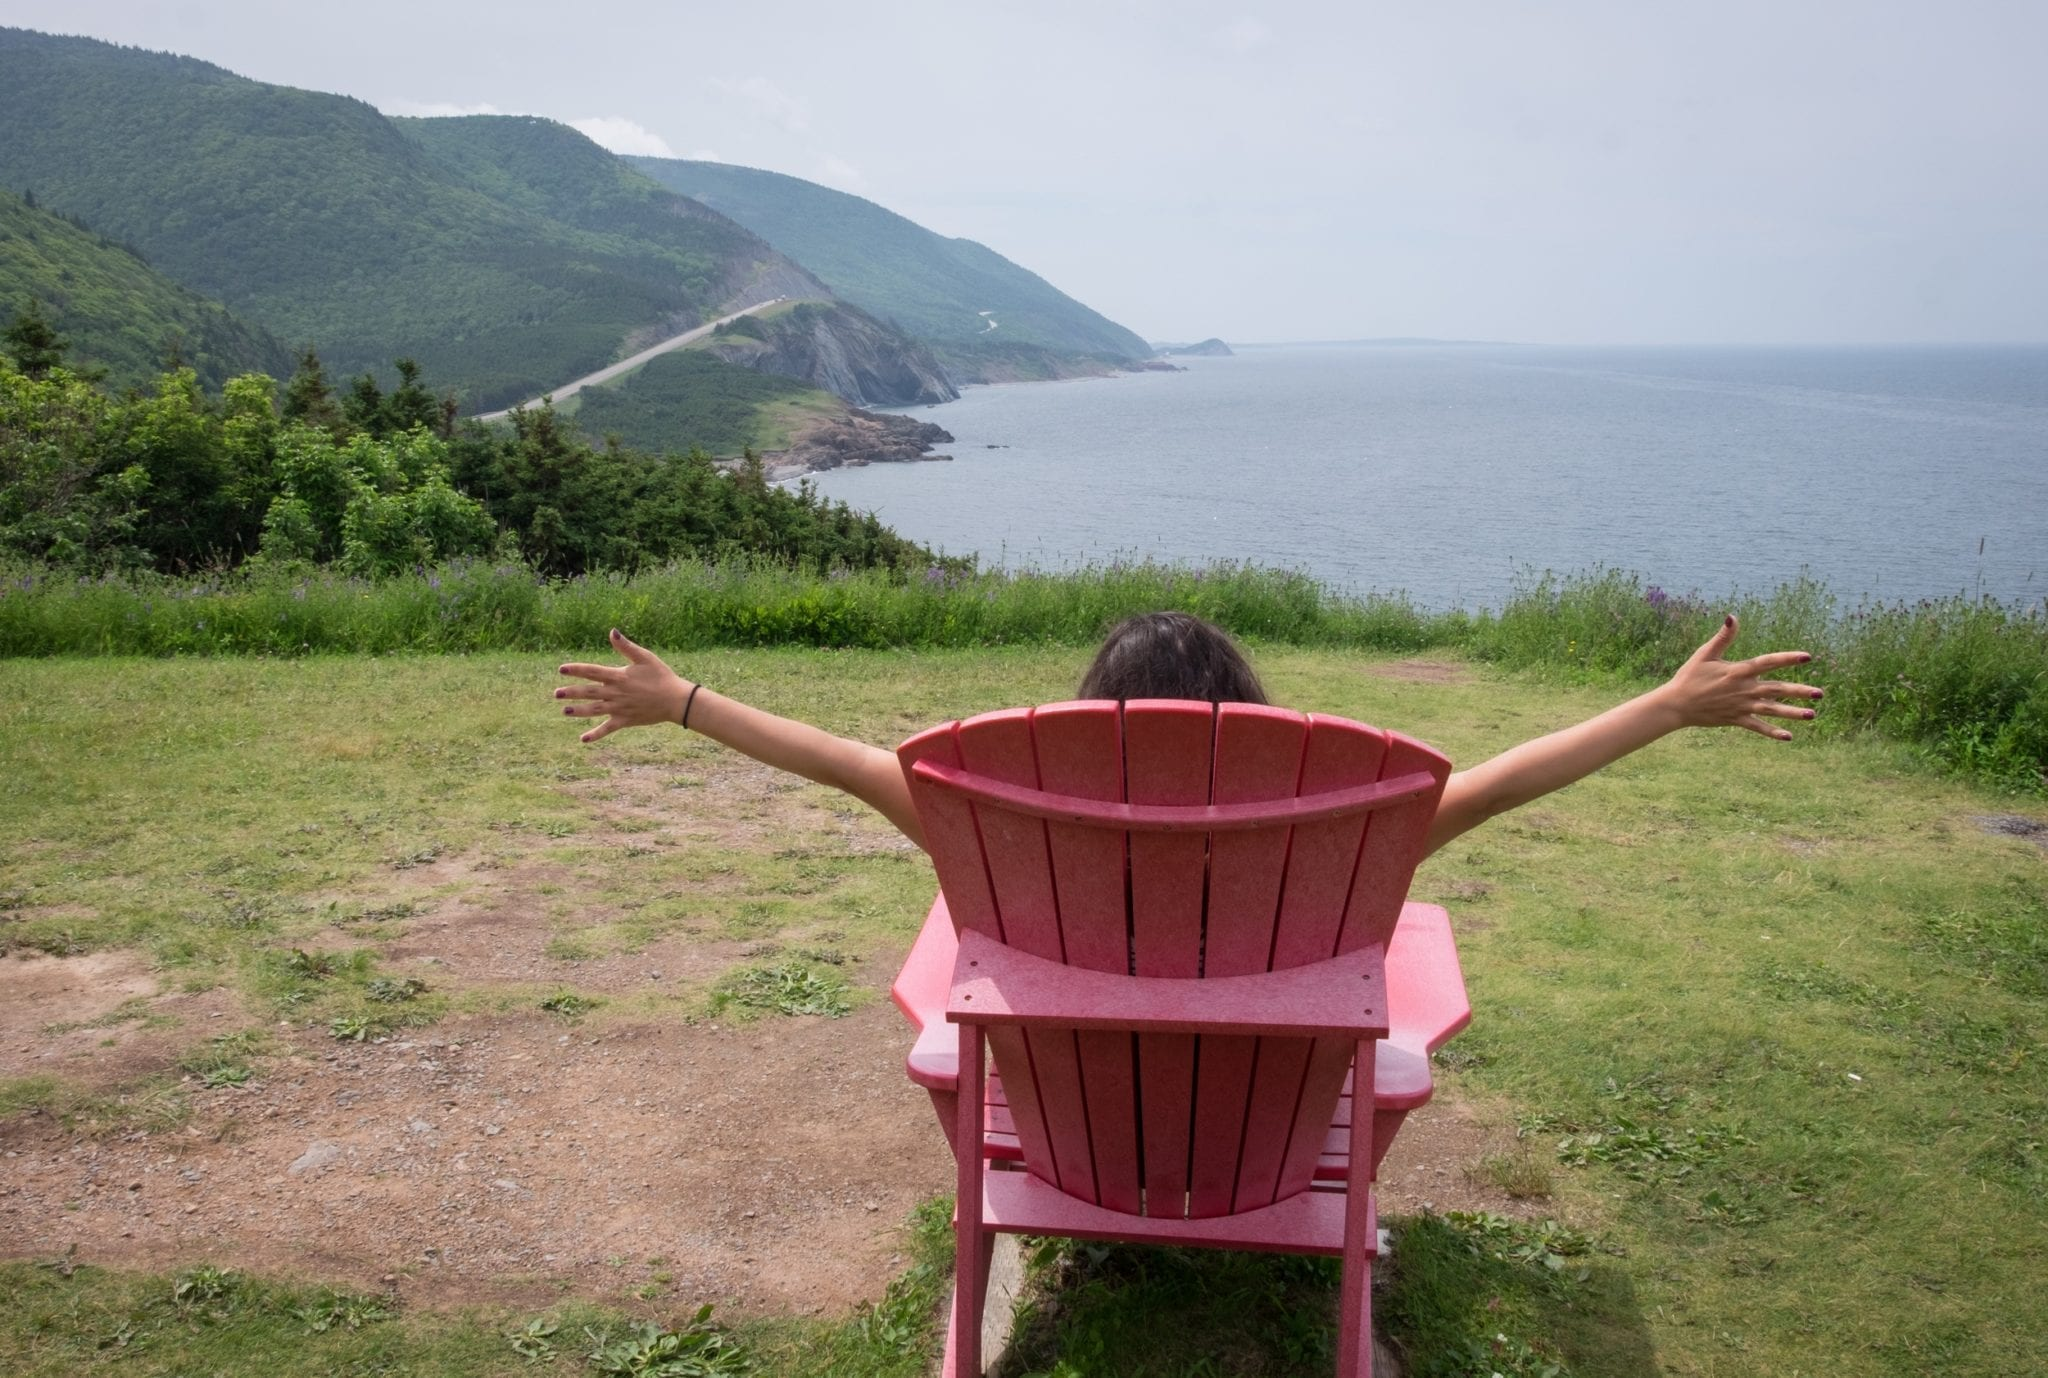 Kate sits in a red chair and has her arms up giving double thumbs ups. In front of her are hills, winding roads, and the ocean at Cape Breton Highlands National Park.